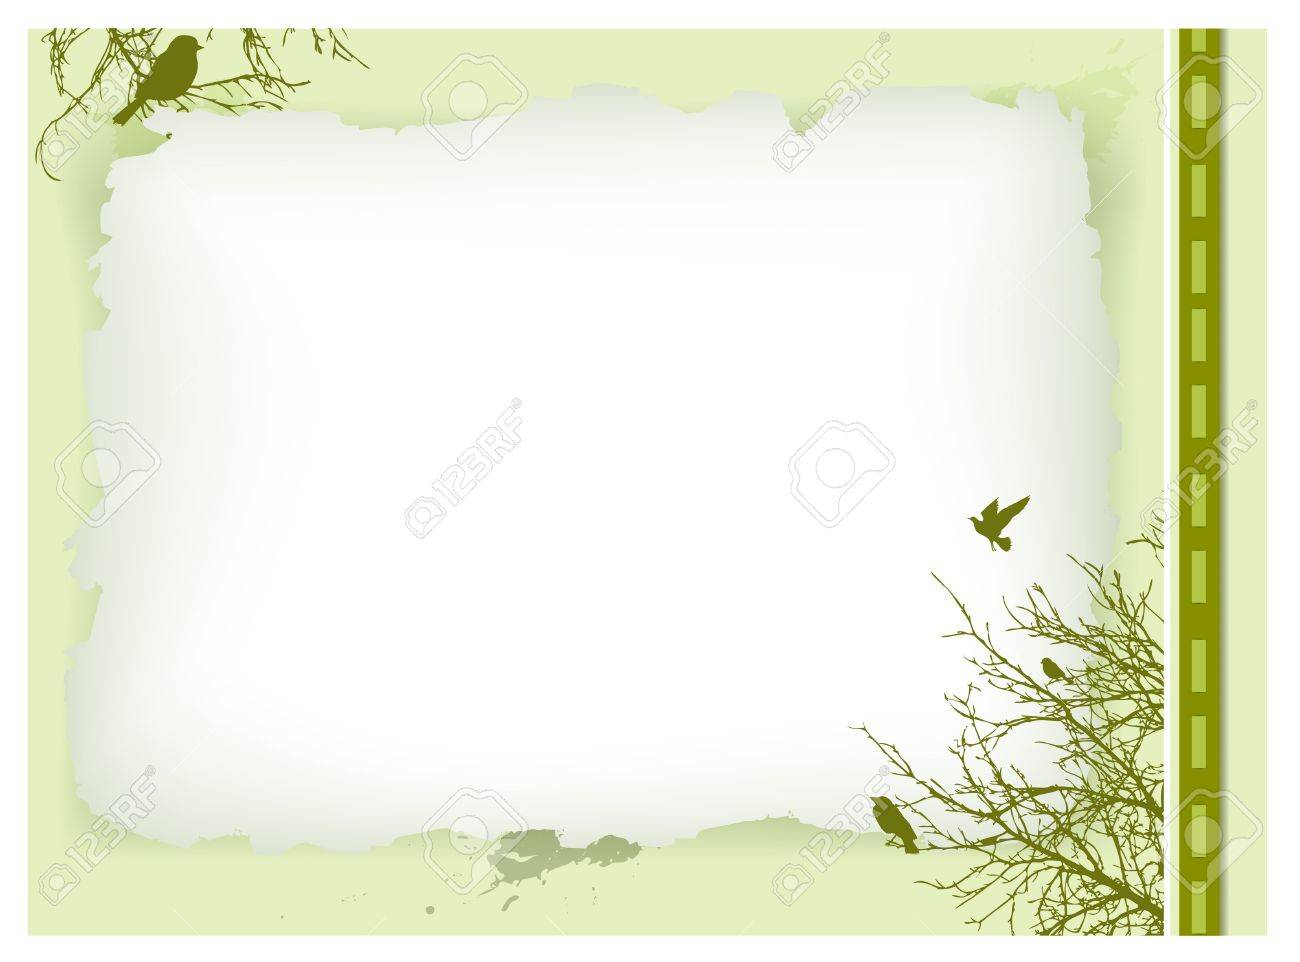 decorative vintage invitation card with nature elements and copyspace - 10043041